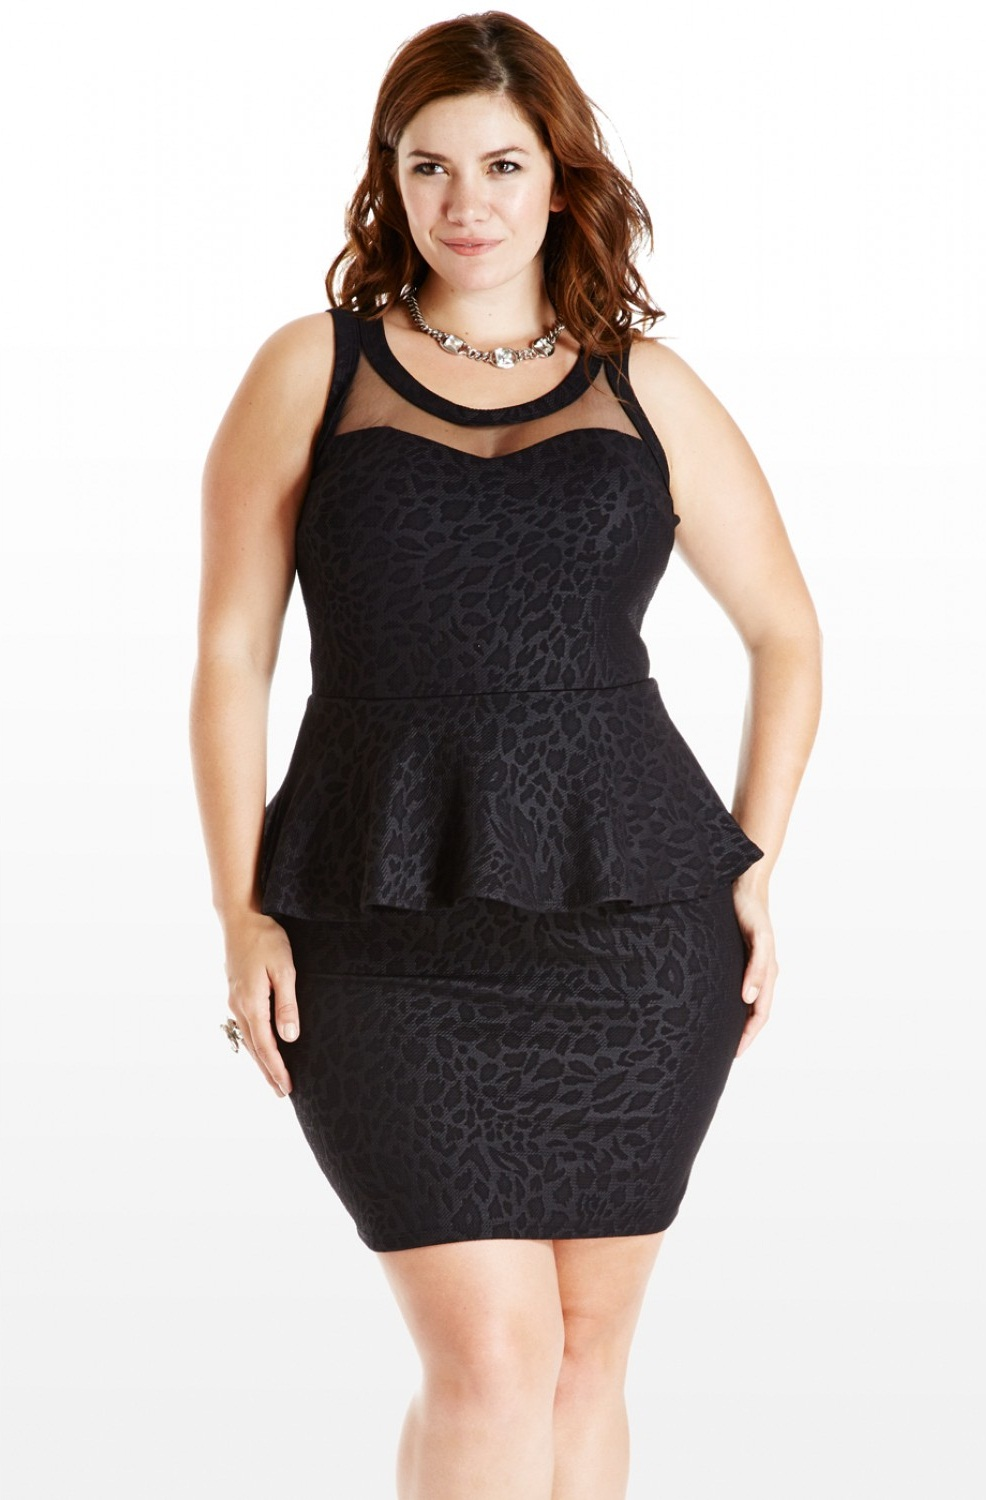 Plus Size Formal Dresses Under 100: Plus Size Peplum Dress Picture Collection